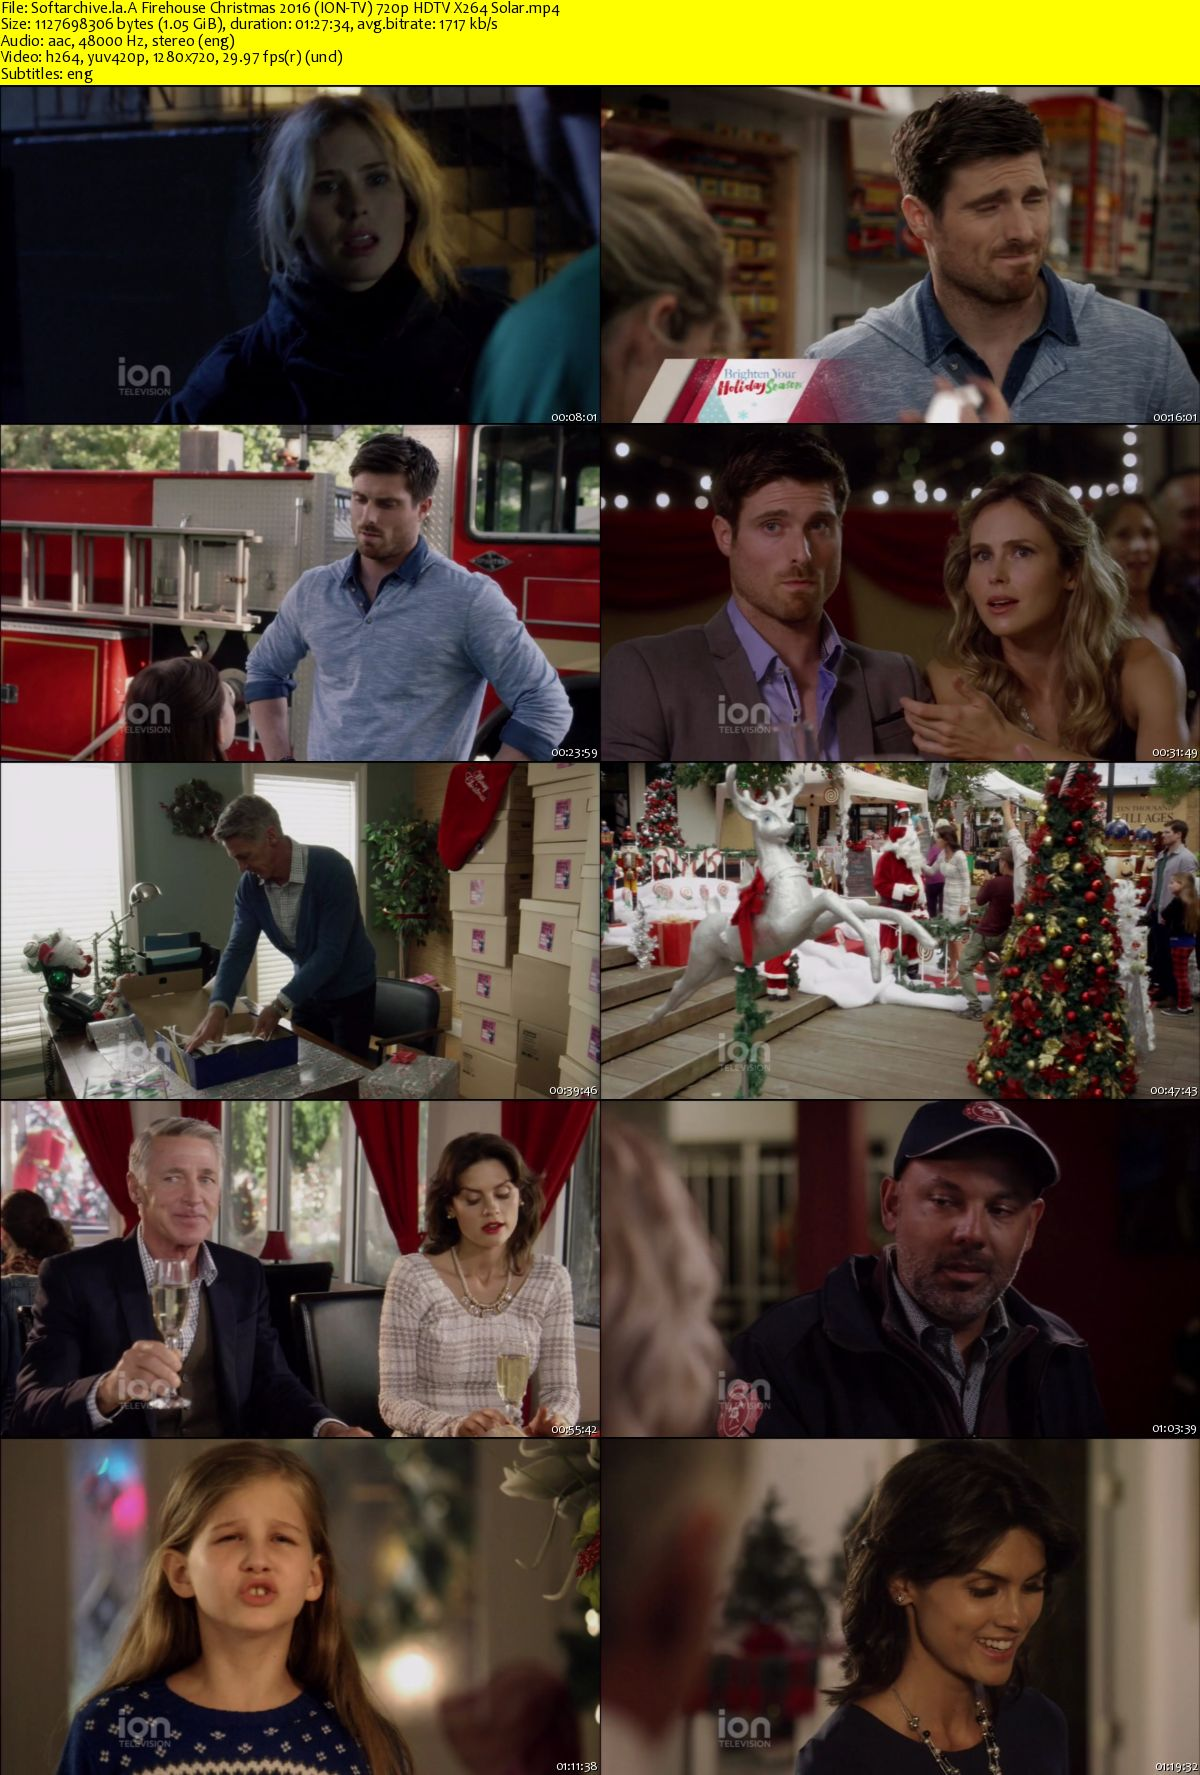 A Firehouse Christmas.Download A Firehouse Christmas 2016 Ion Tv 720p Hdtv X264